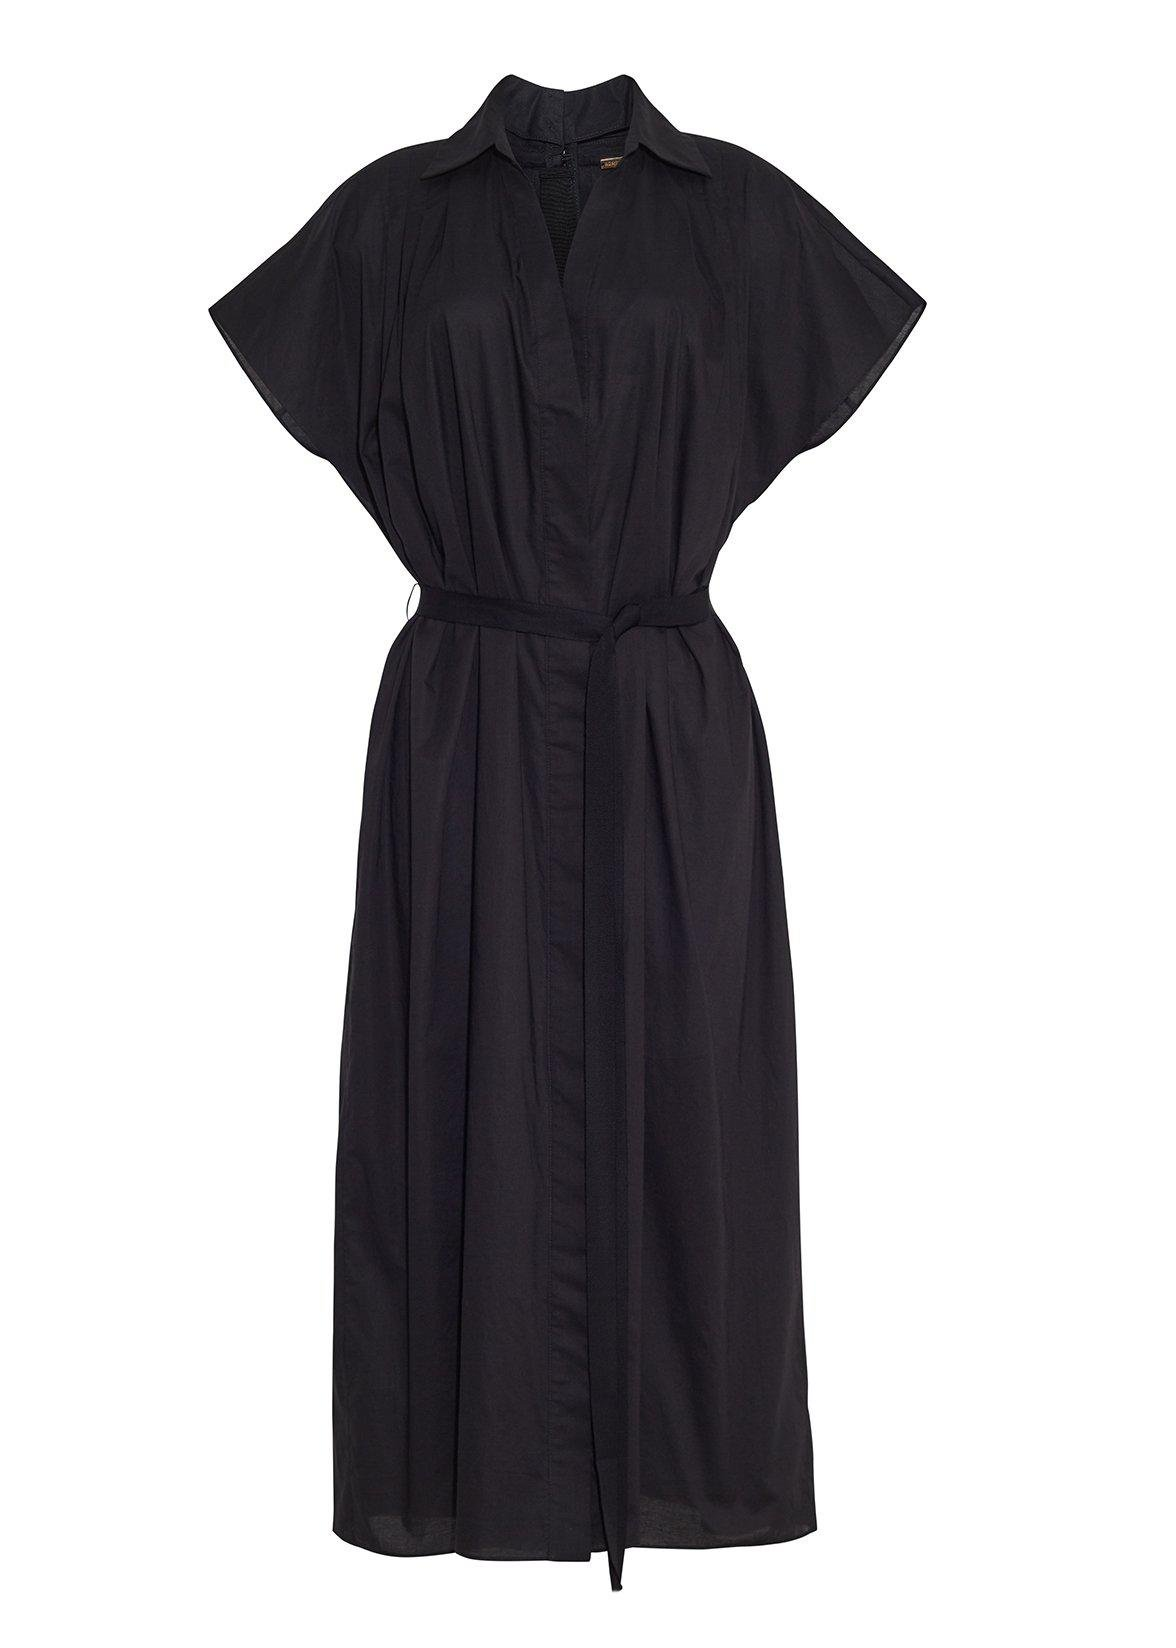 SHIRT DRESS IN COTTON VOILE 1